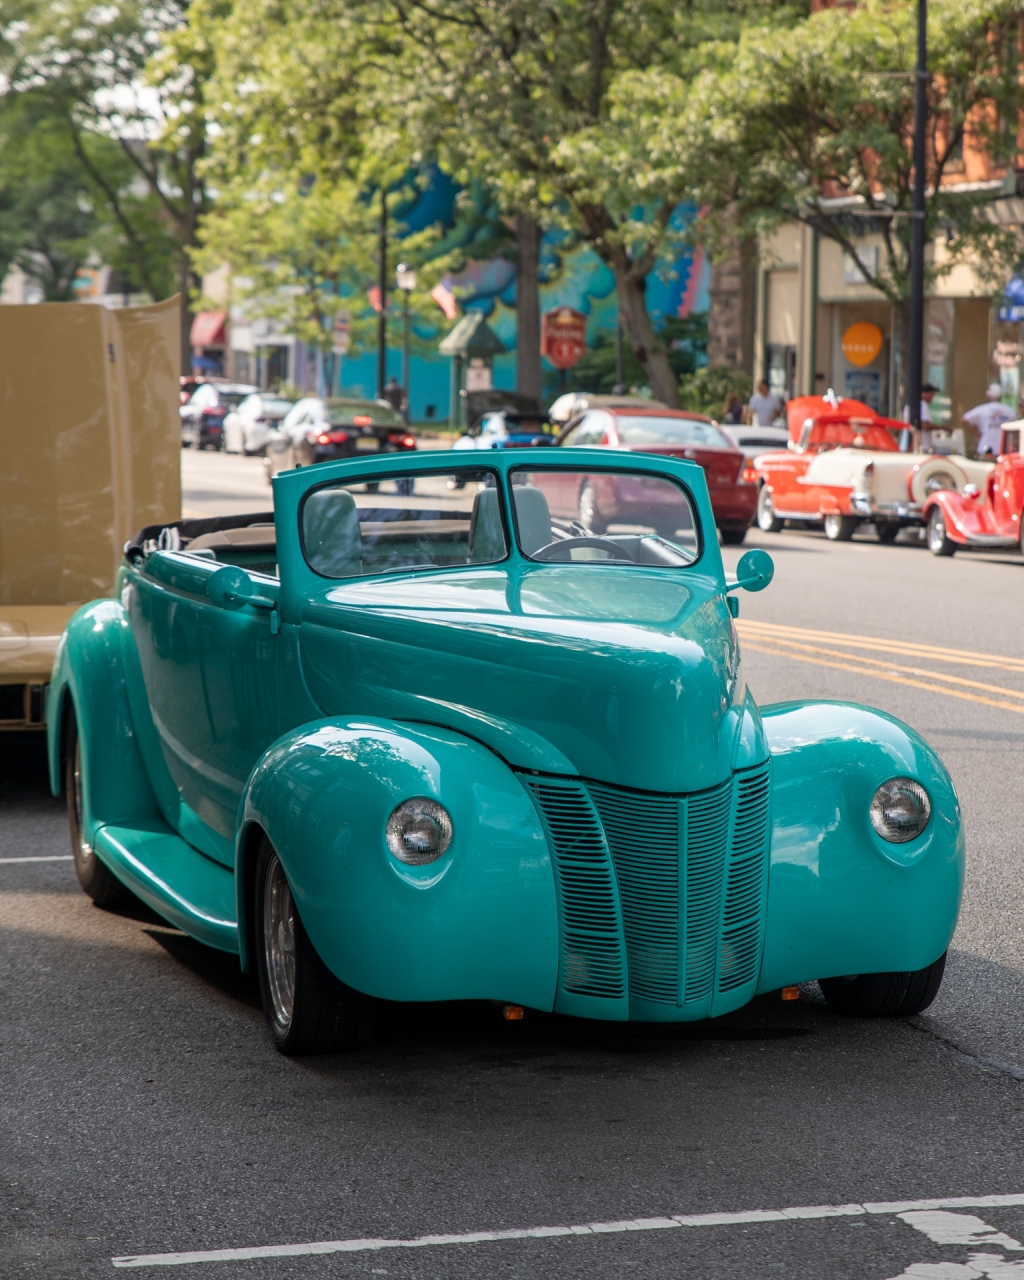 Somerville NJ Cruise Night | Somerville New Jersey | July 26th 2019 2019-07-29